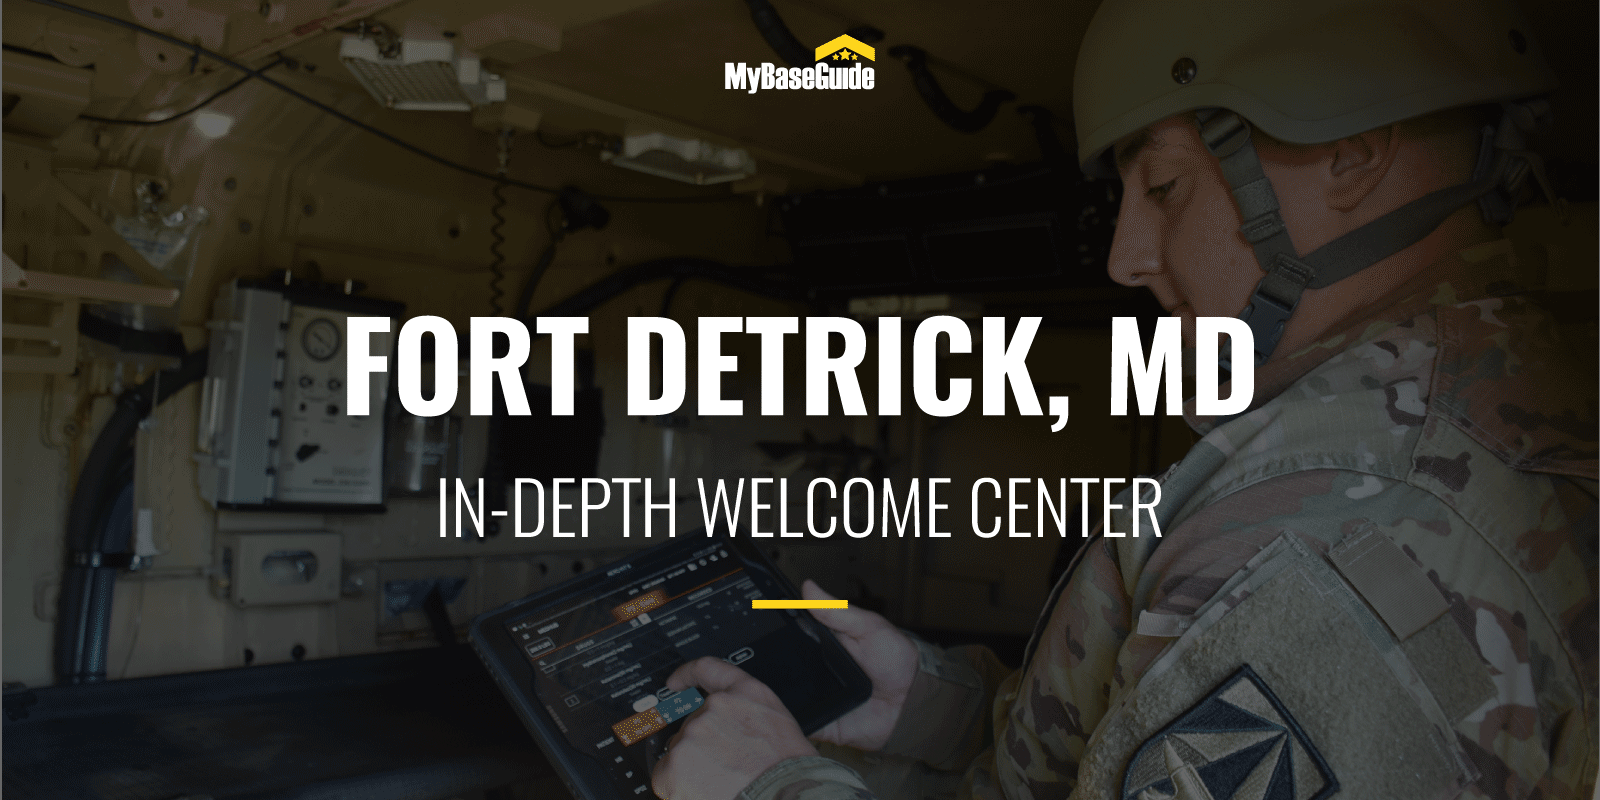 Fort Detrick, MD: In-Depth Welcome Center